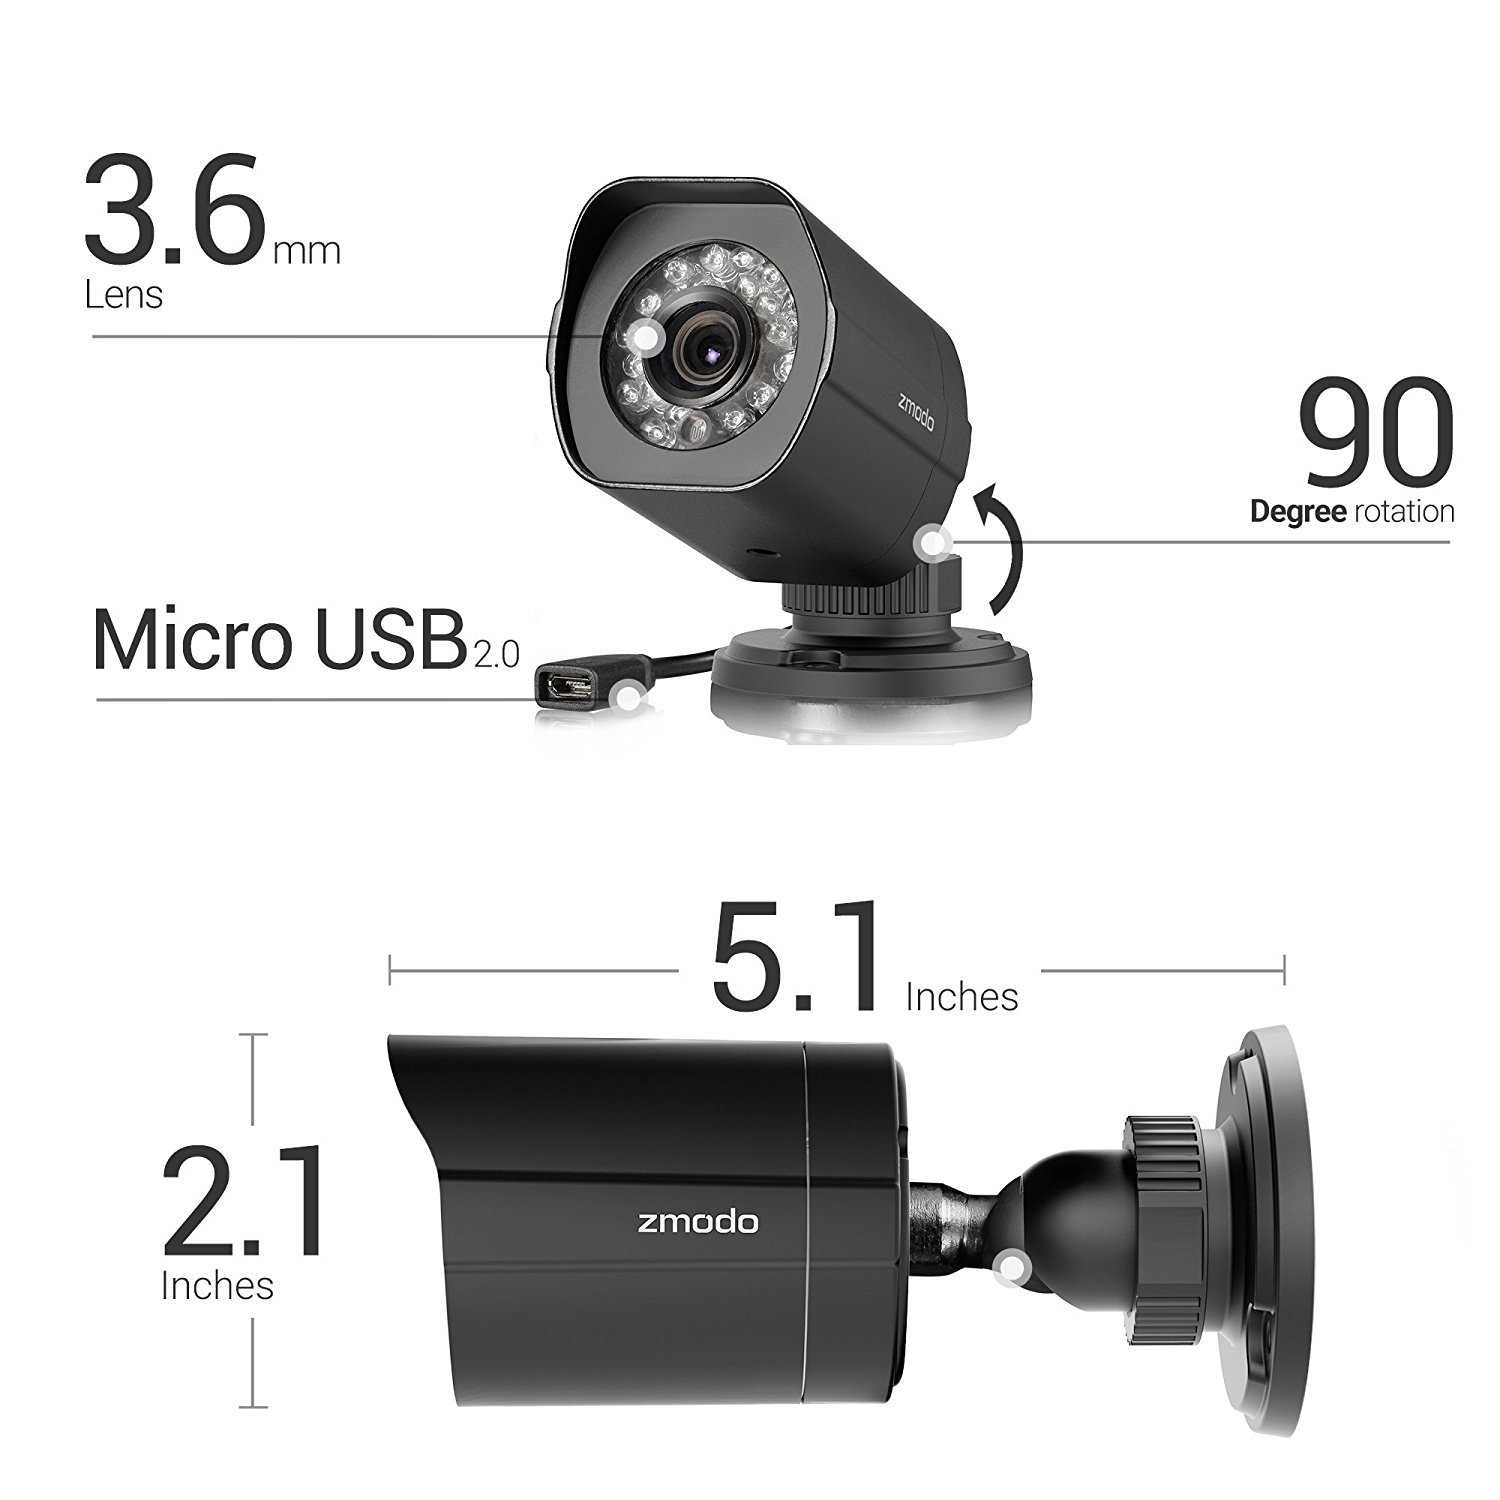 Zmodo 2 Pack FULL HD 1080P Outdoor sPoE Security Camera w/8CH sPoE Repeater for Power & Data Transmission, Customizable Motion Detection(NVR not Included)-[FREE 6-Month Cloud Service for Recording]